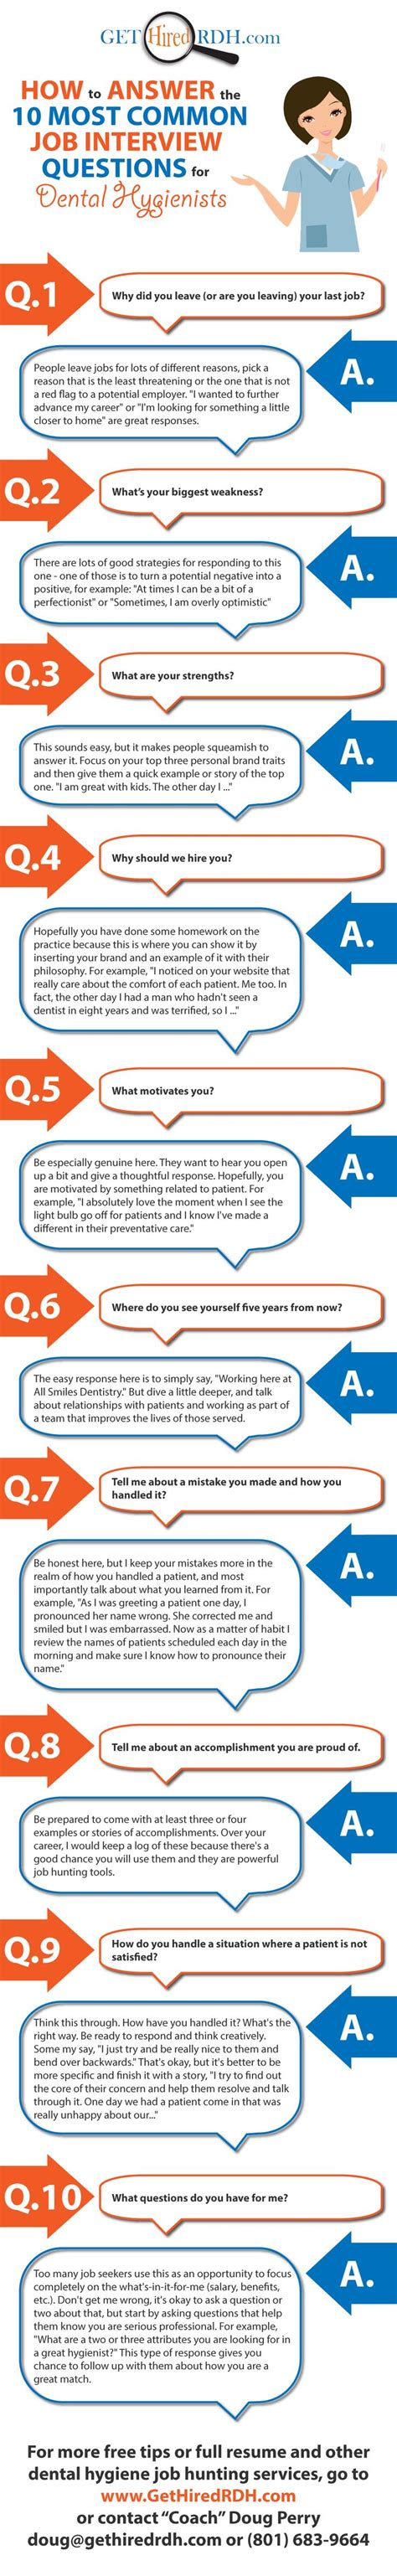 elementary school nurse interview questions military bralicious co